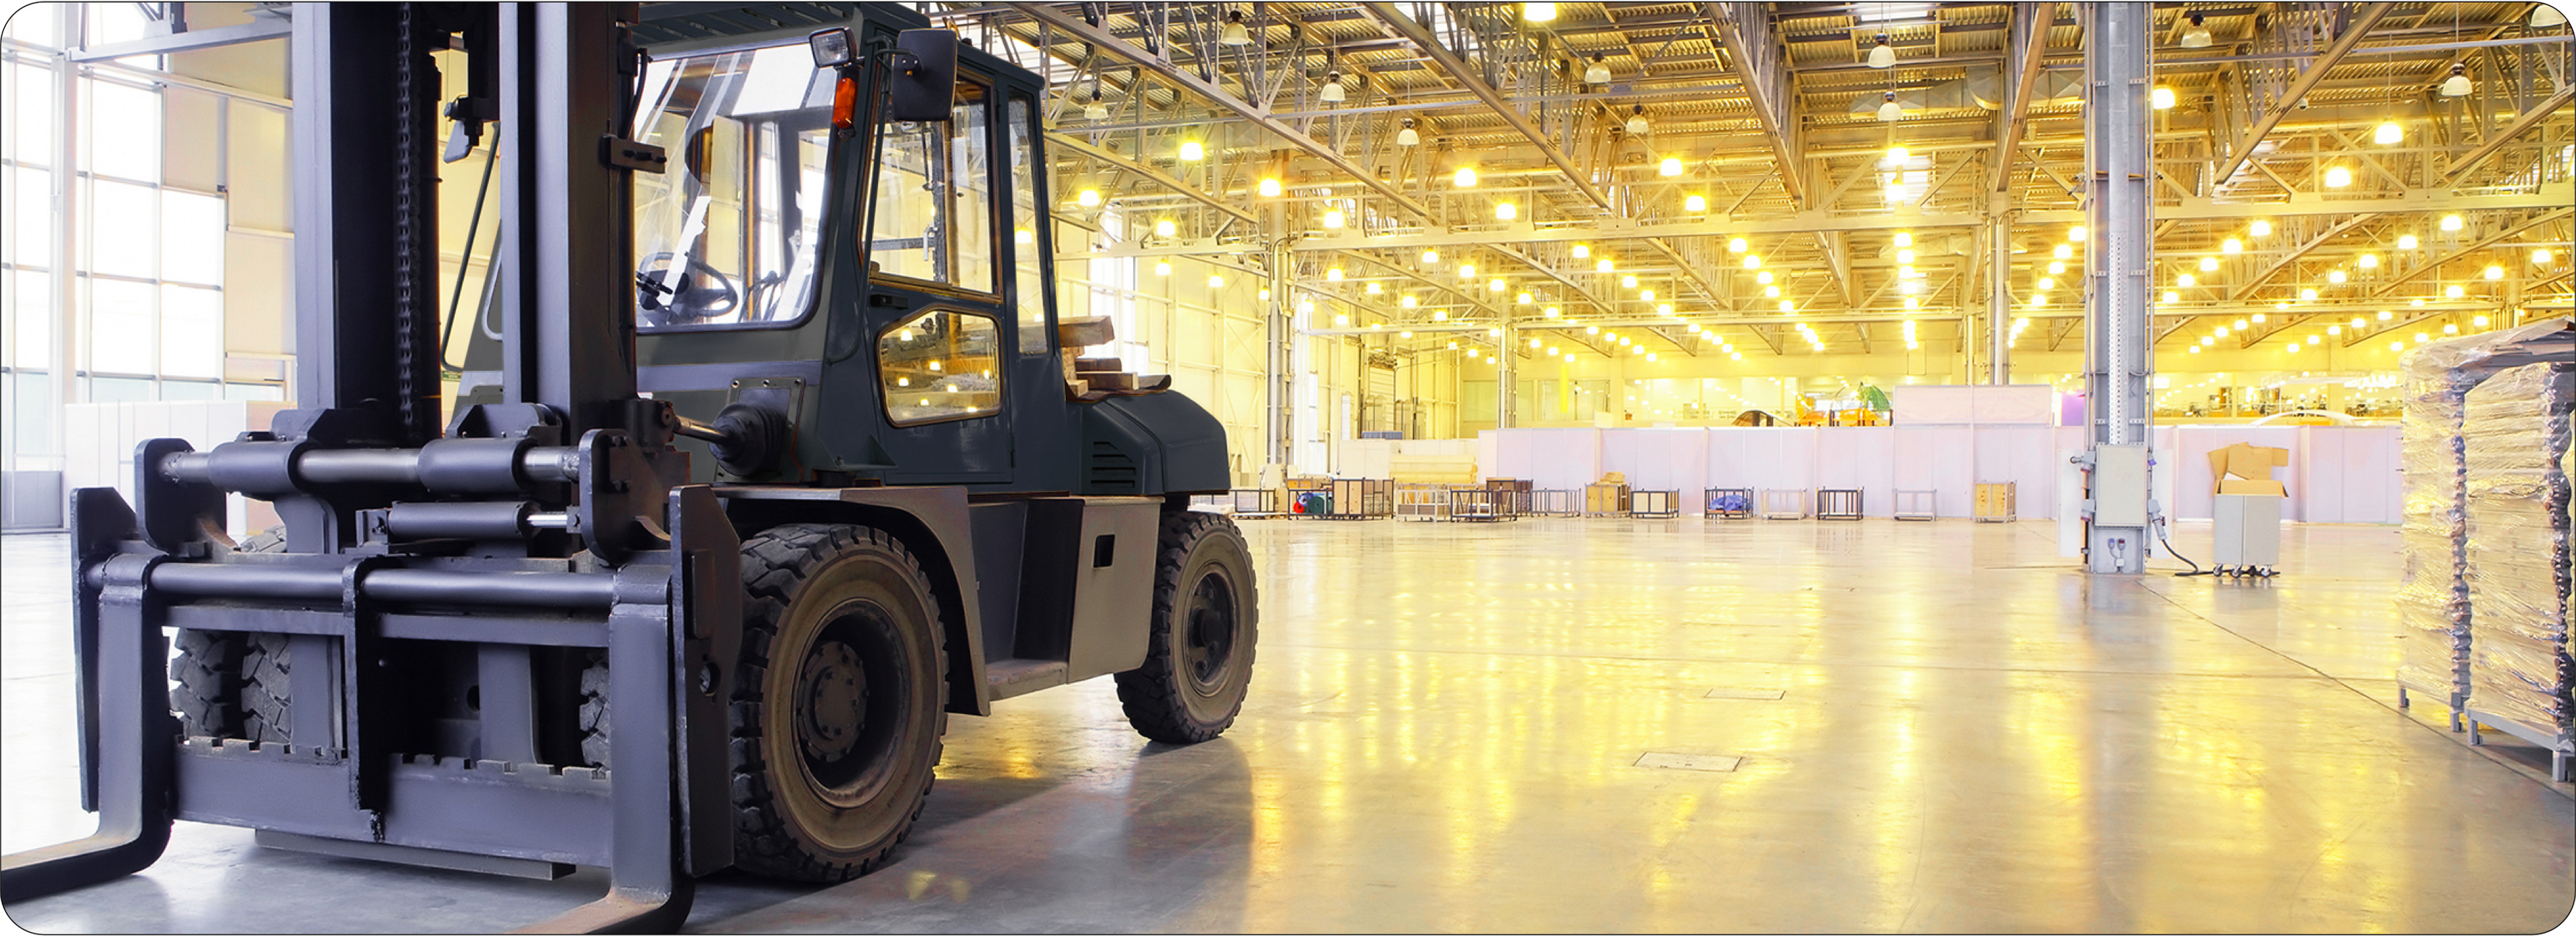 Picture of a warehouse with one forklift inside it